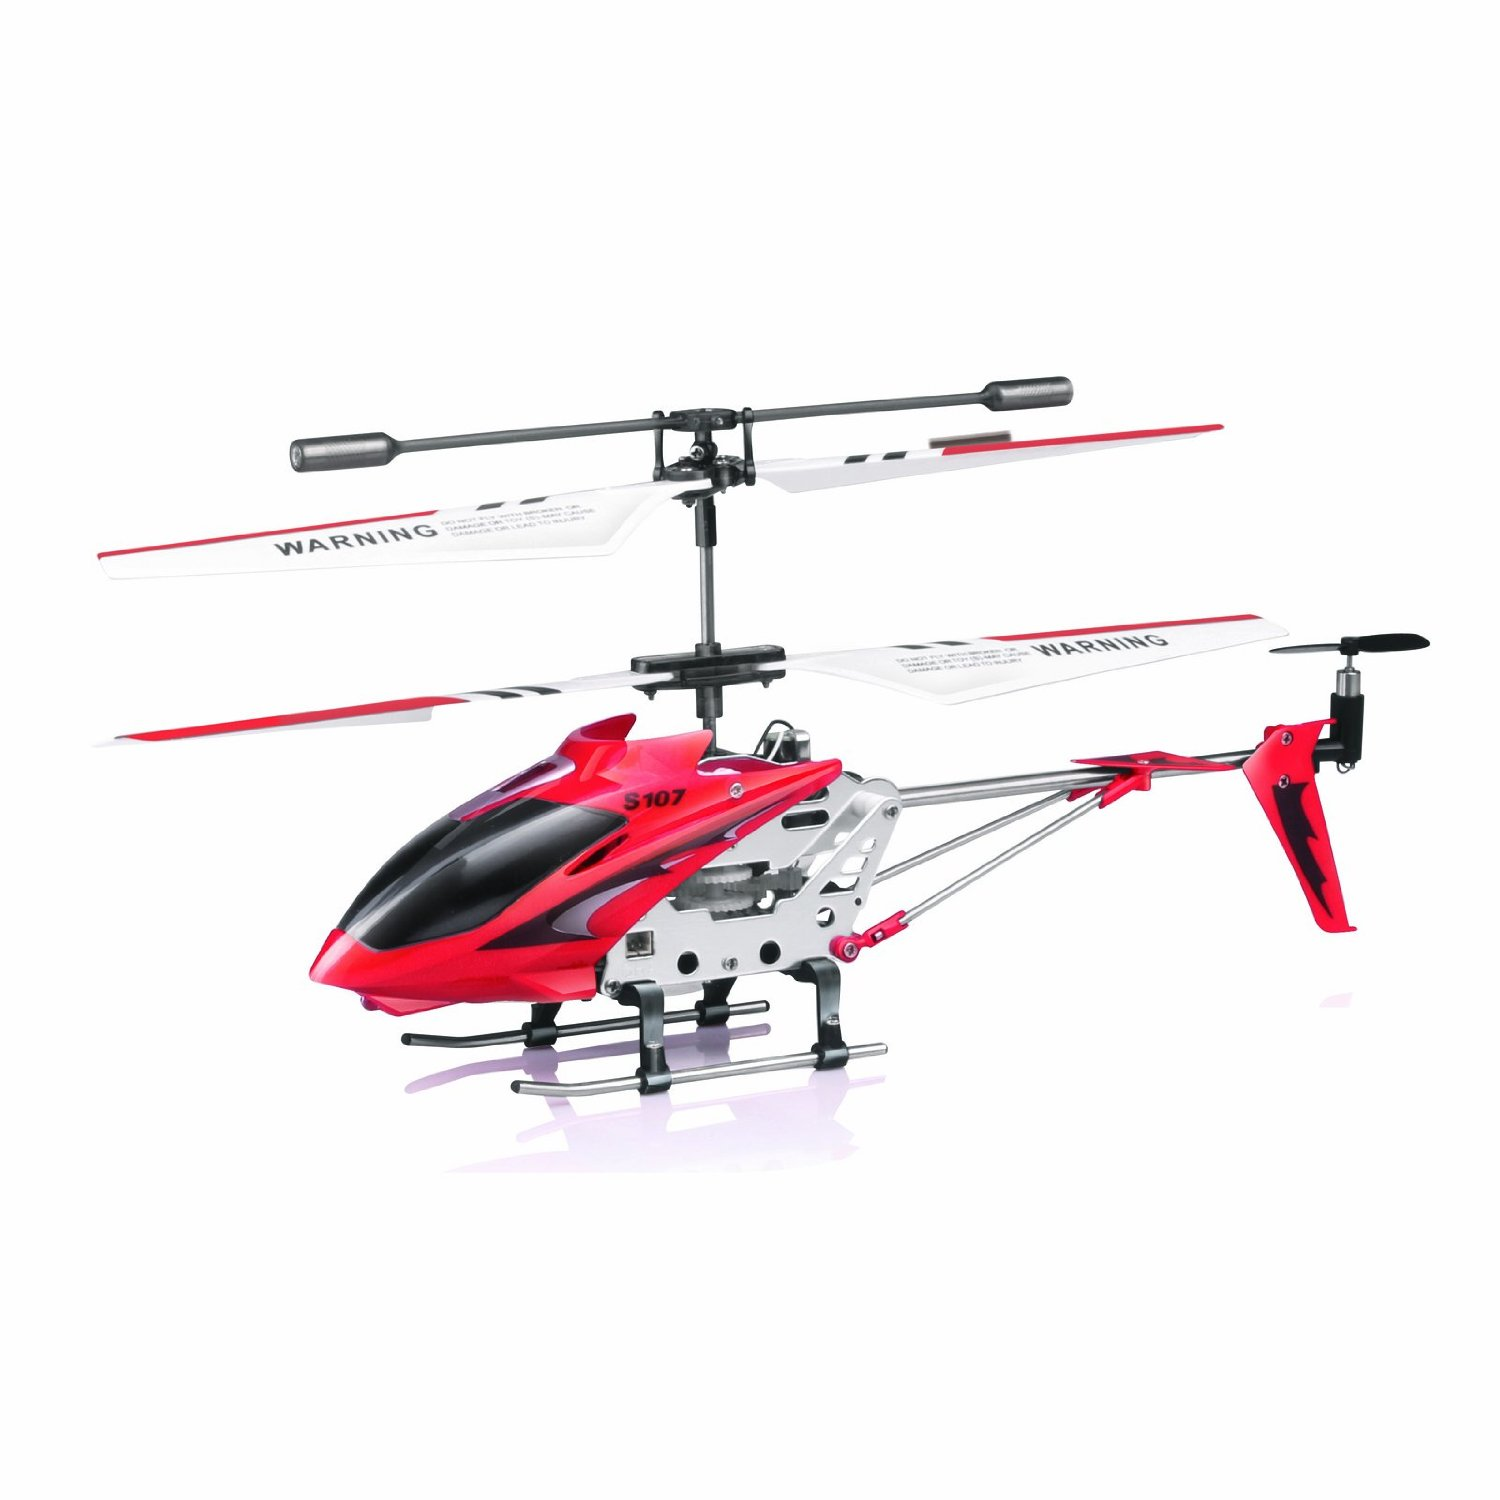 remote control helicopter s107 with Syma S107s107g 3 5 Channel Rc Helicopter With Gyro on Watch besides Best Micro Helicopter 2010 respond besides 1424271122 besides Best Remote Control Helicopters For Kids in addition 390929994339.